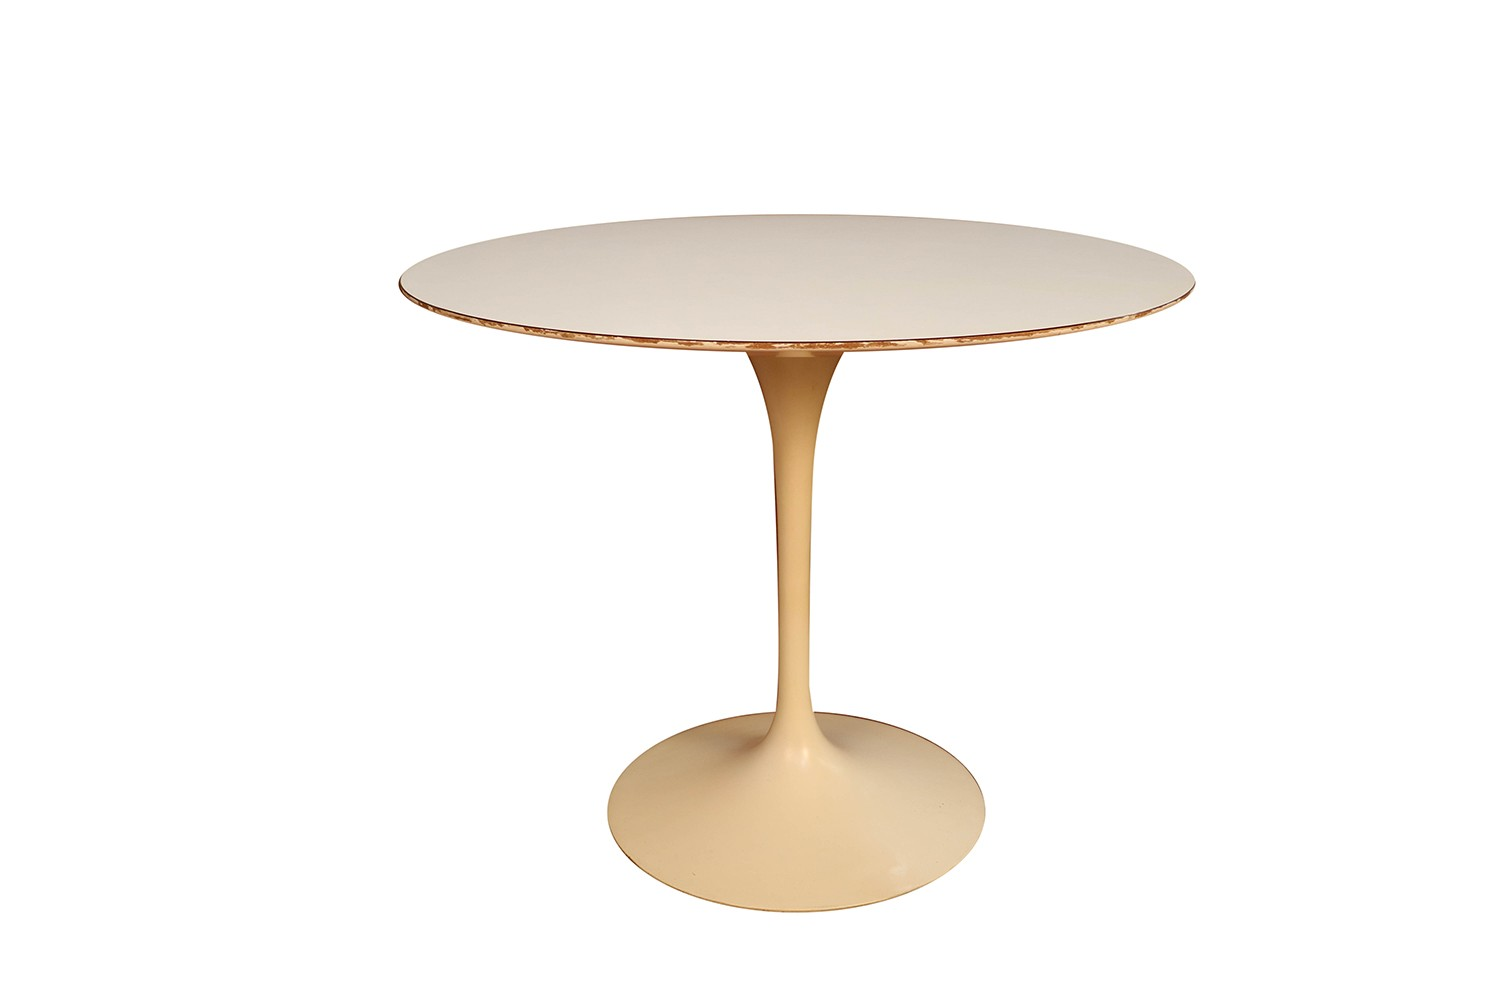 Tulip Table Early Knoll Mid Century Vintage Round Saarinen Tulip Table